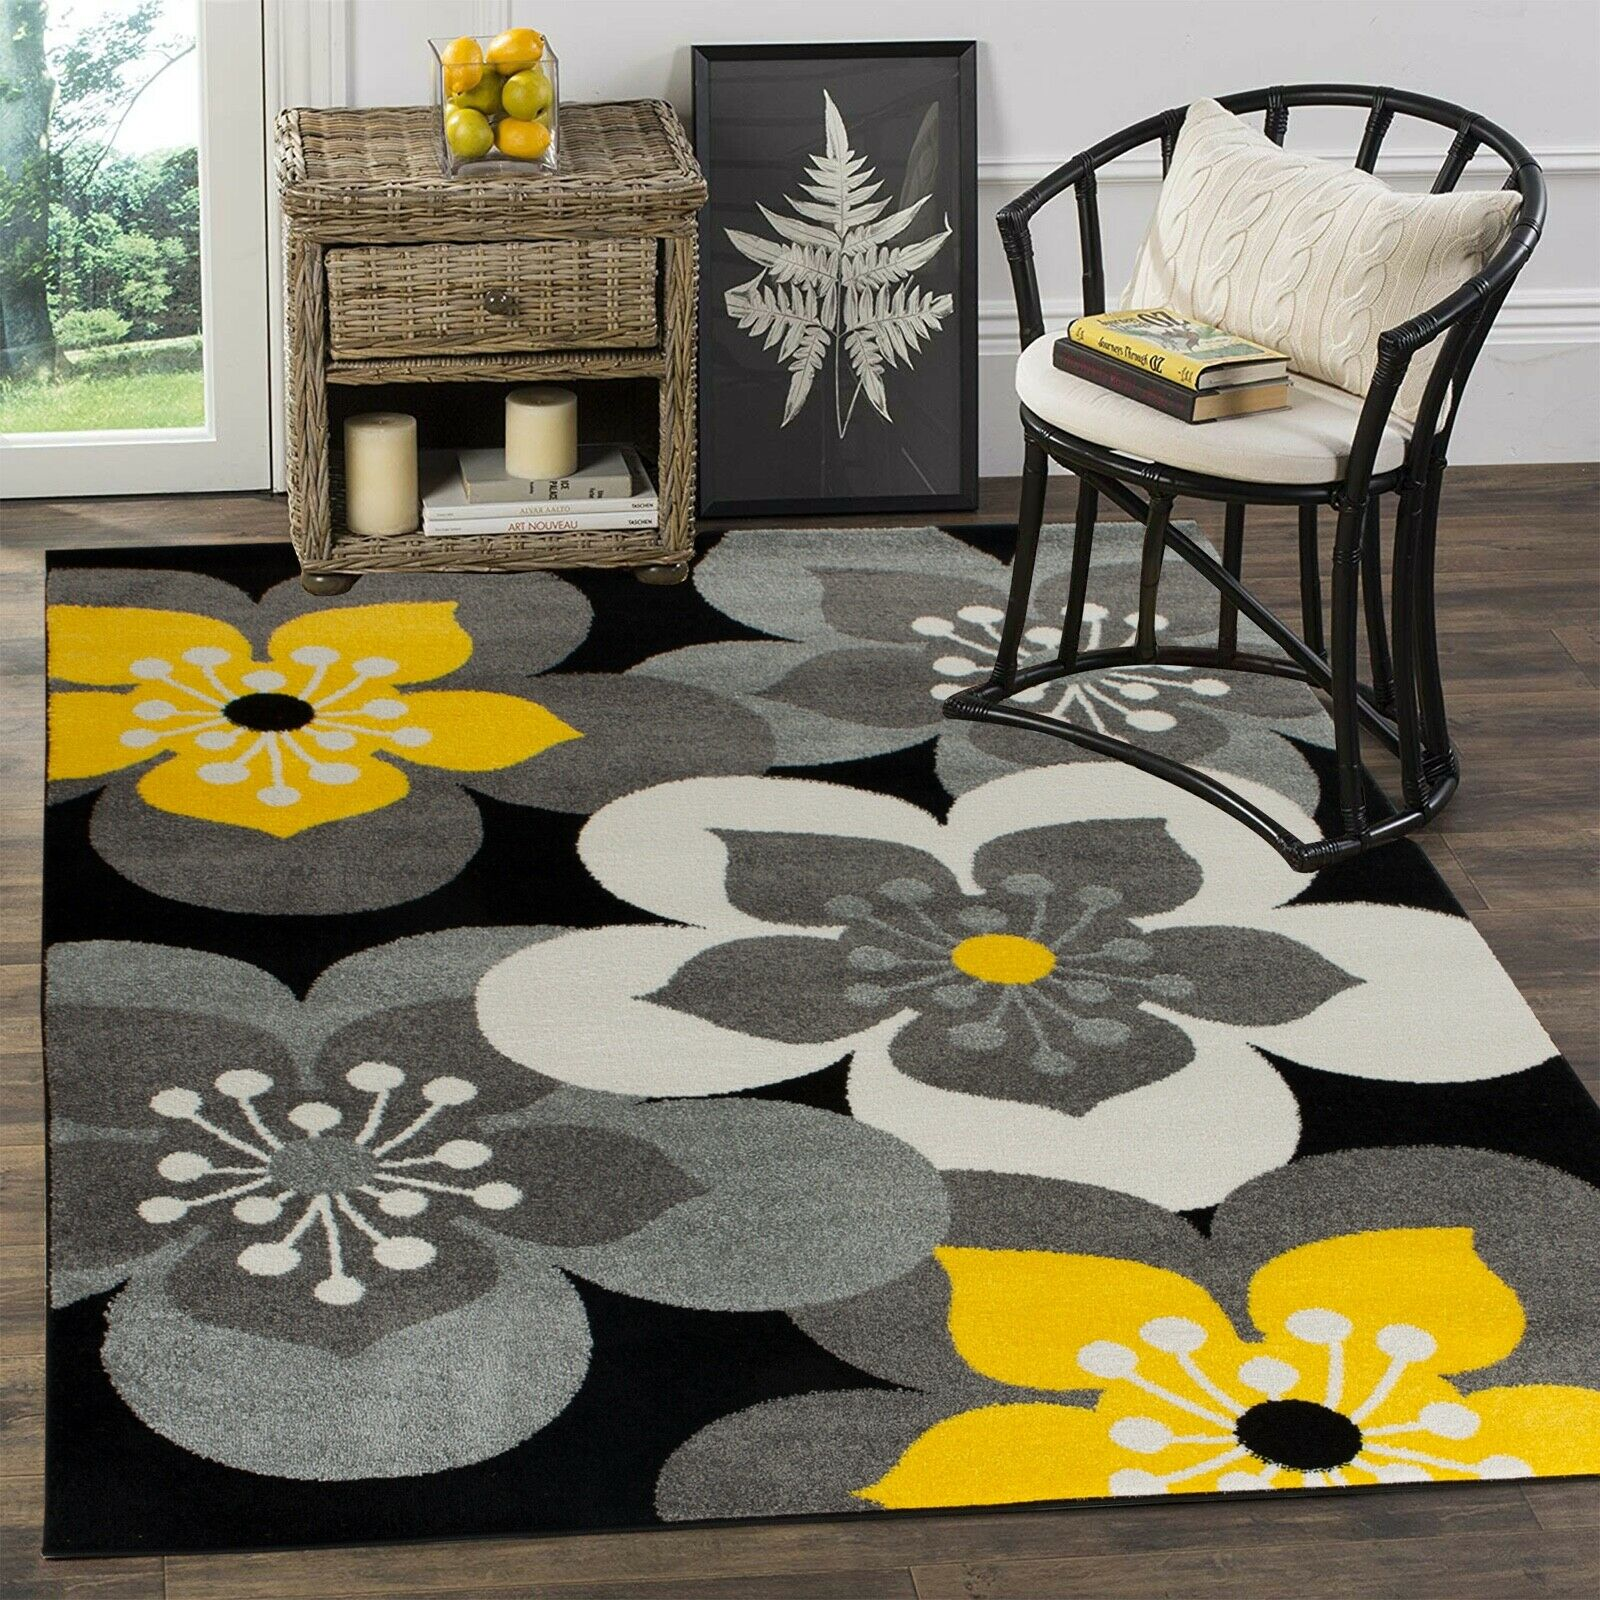 Picture of: Area Rug Oxfrd13 Flowers Gray Yellow Black White Soft Pile Size 2×3 3×5 5×7 8×11 Ebay